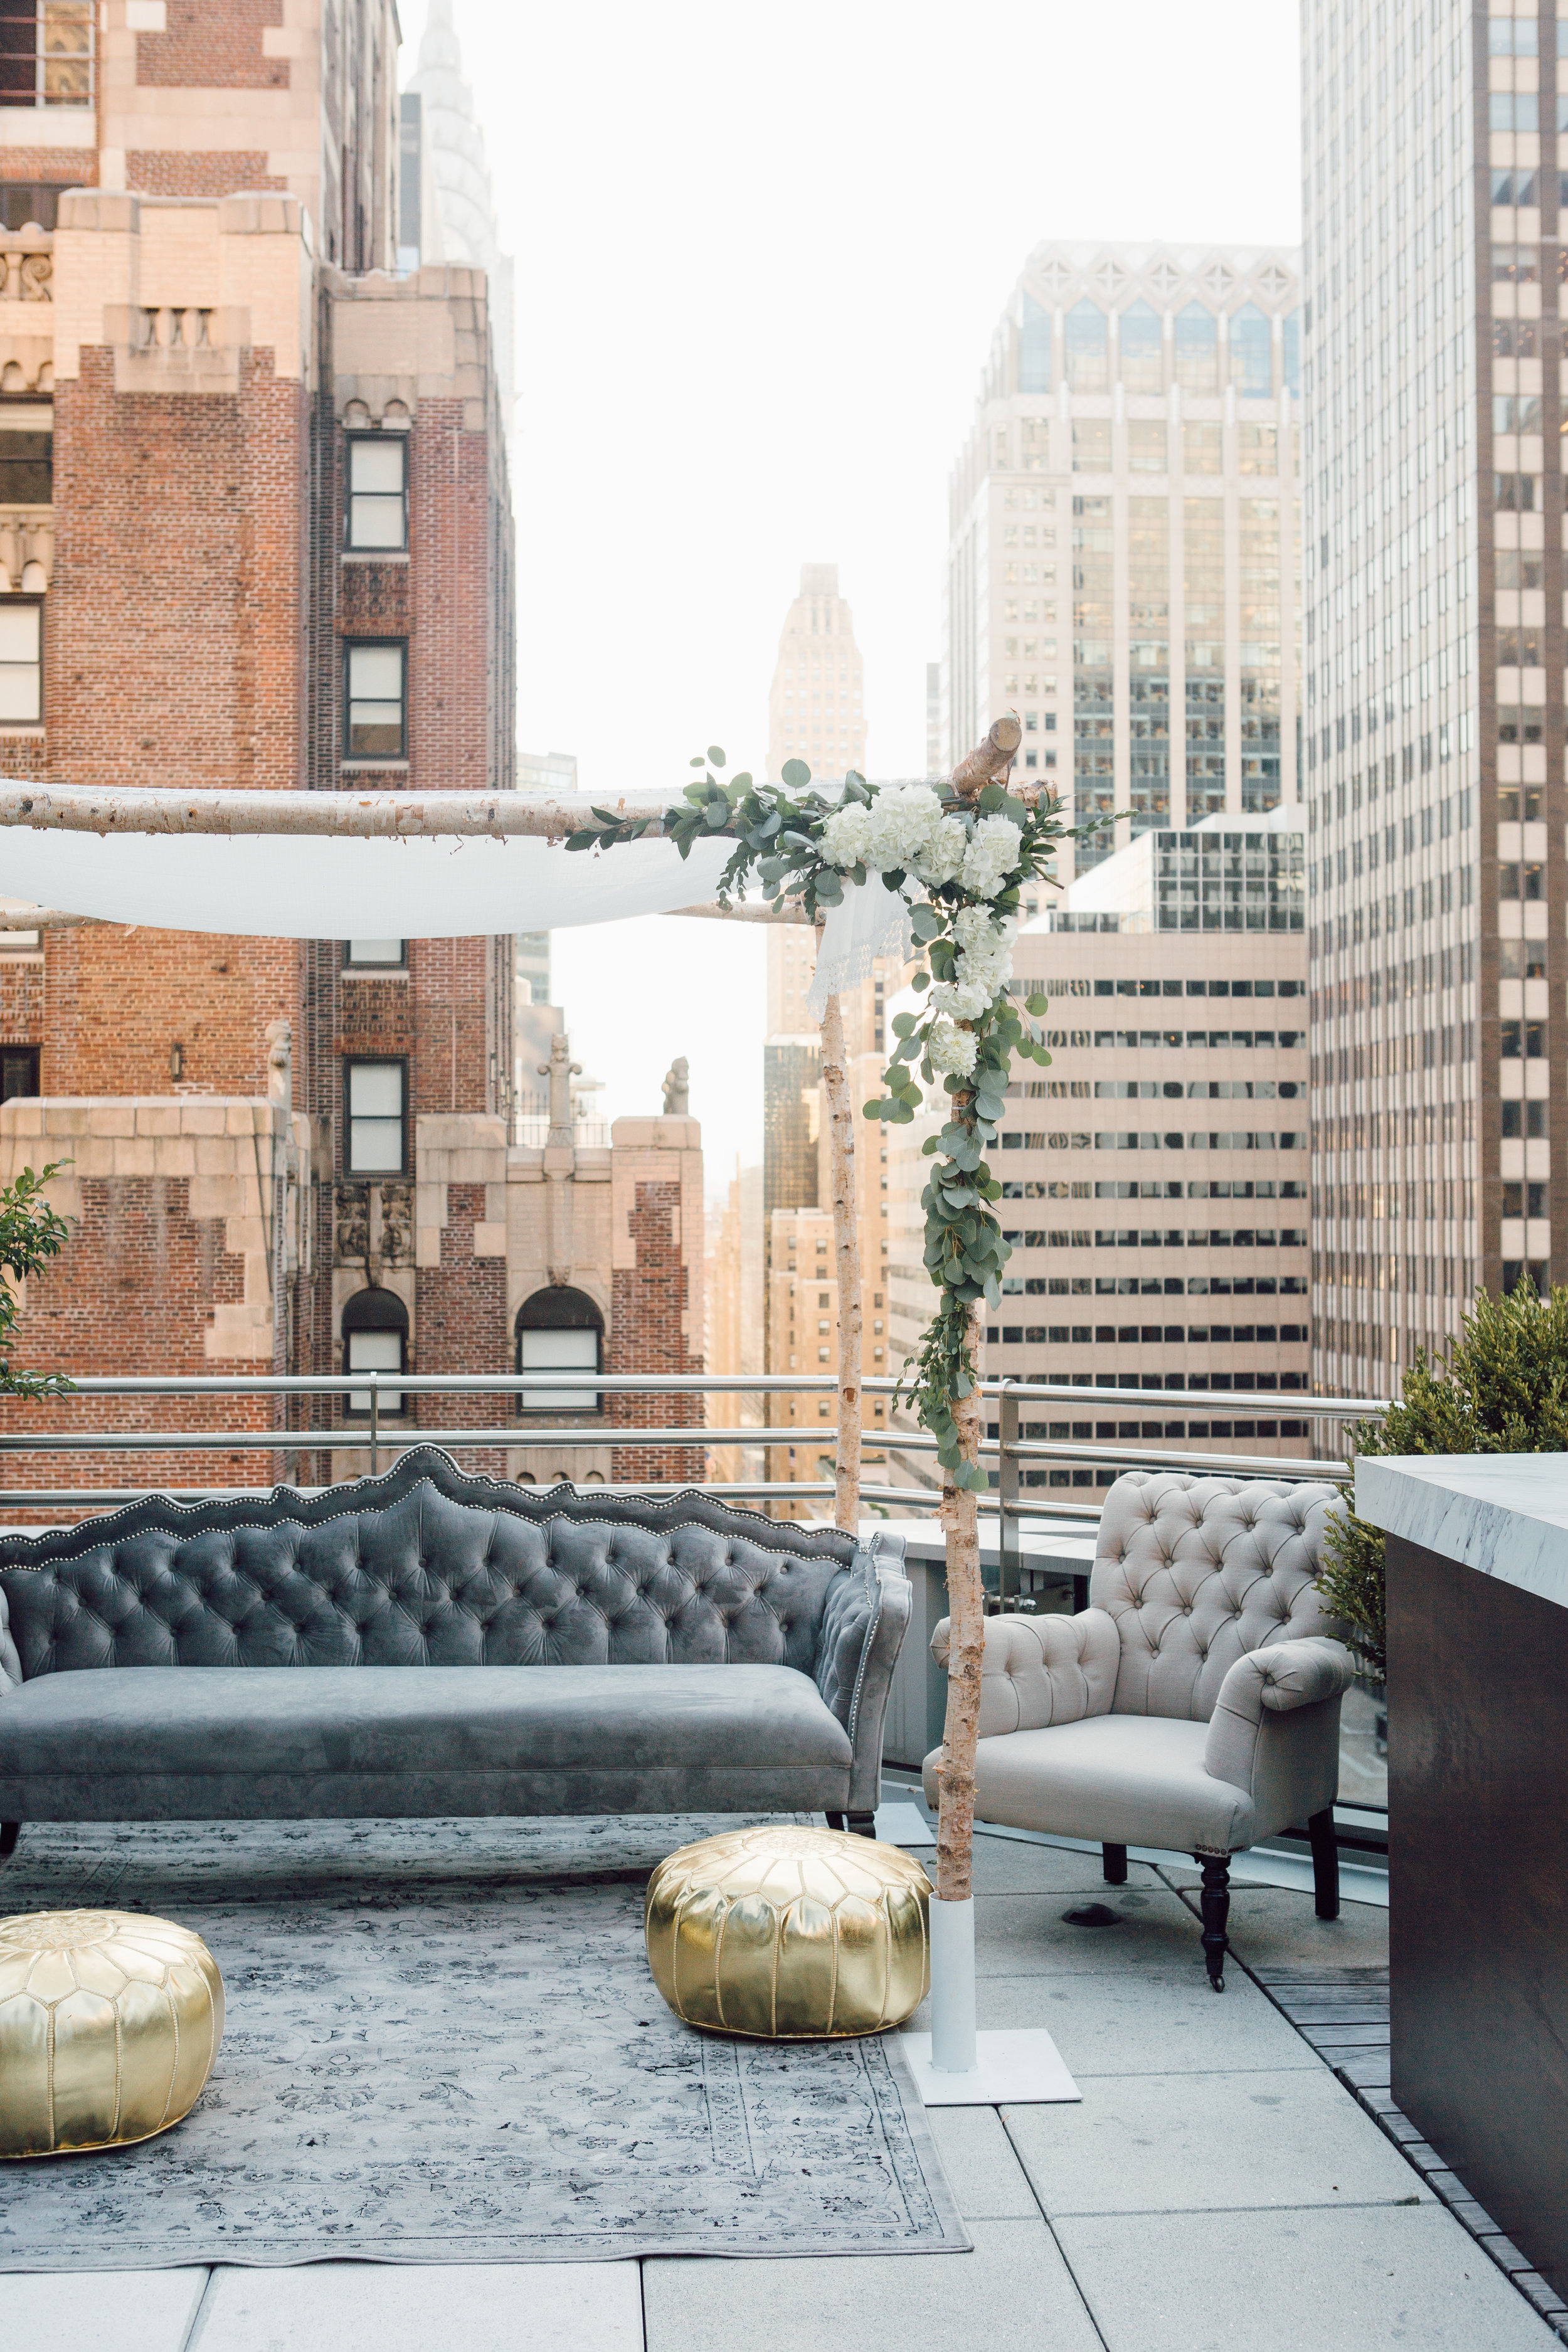 New york rooftop wedding-53.jpg